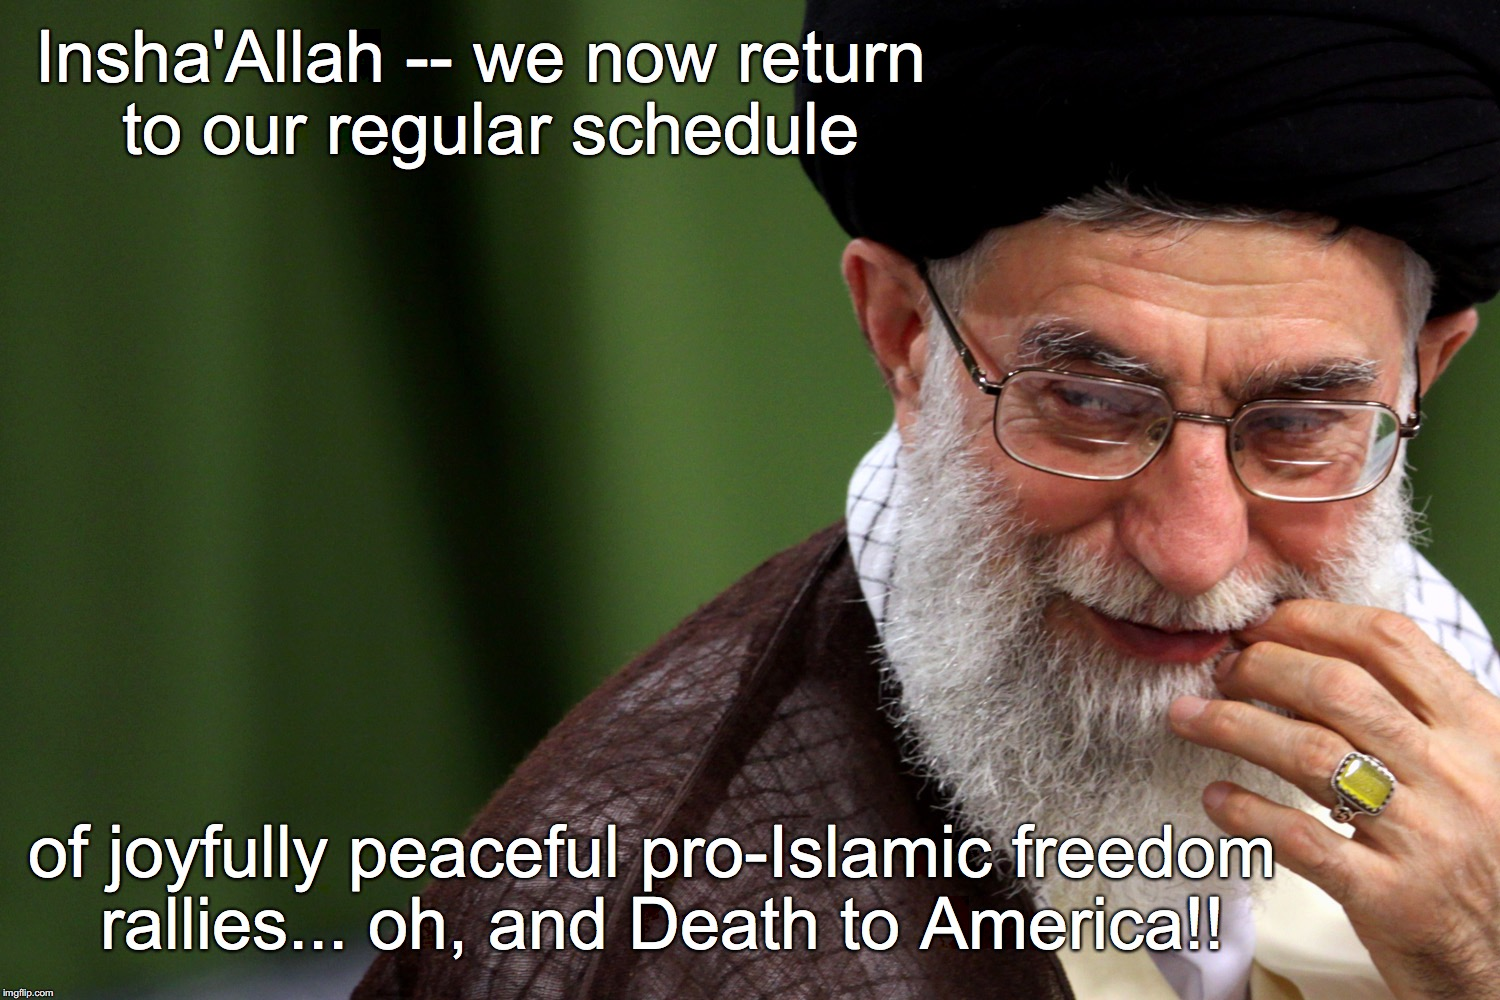 Insha'Allah -- we now return to our regular schedule of joyfully peaceful pro-Islamic freedom rallies... oh, and Death to America!! | image tagged in ayatollah khameini | made w/ Imgflip meme maker